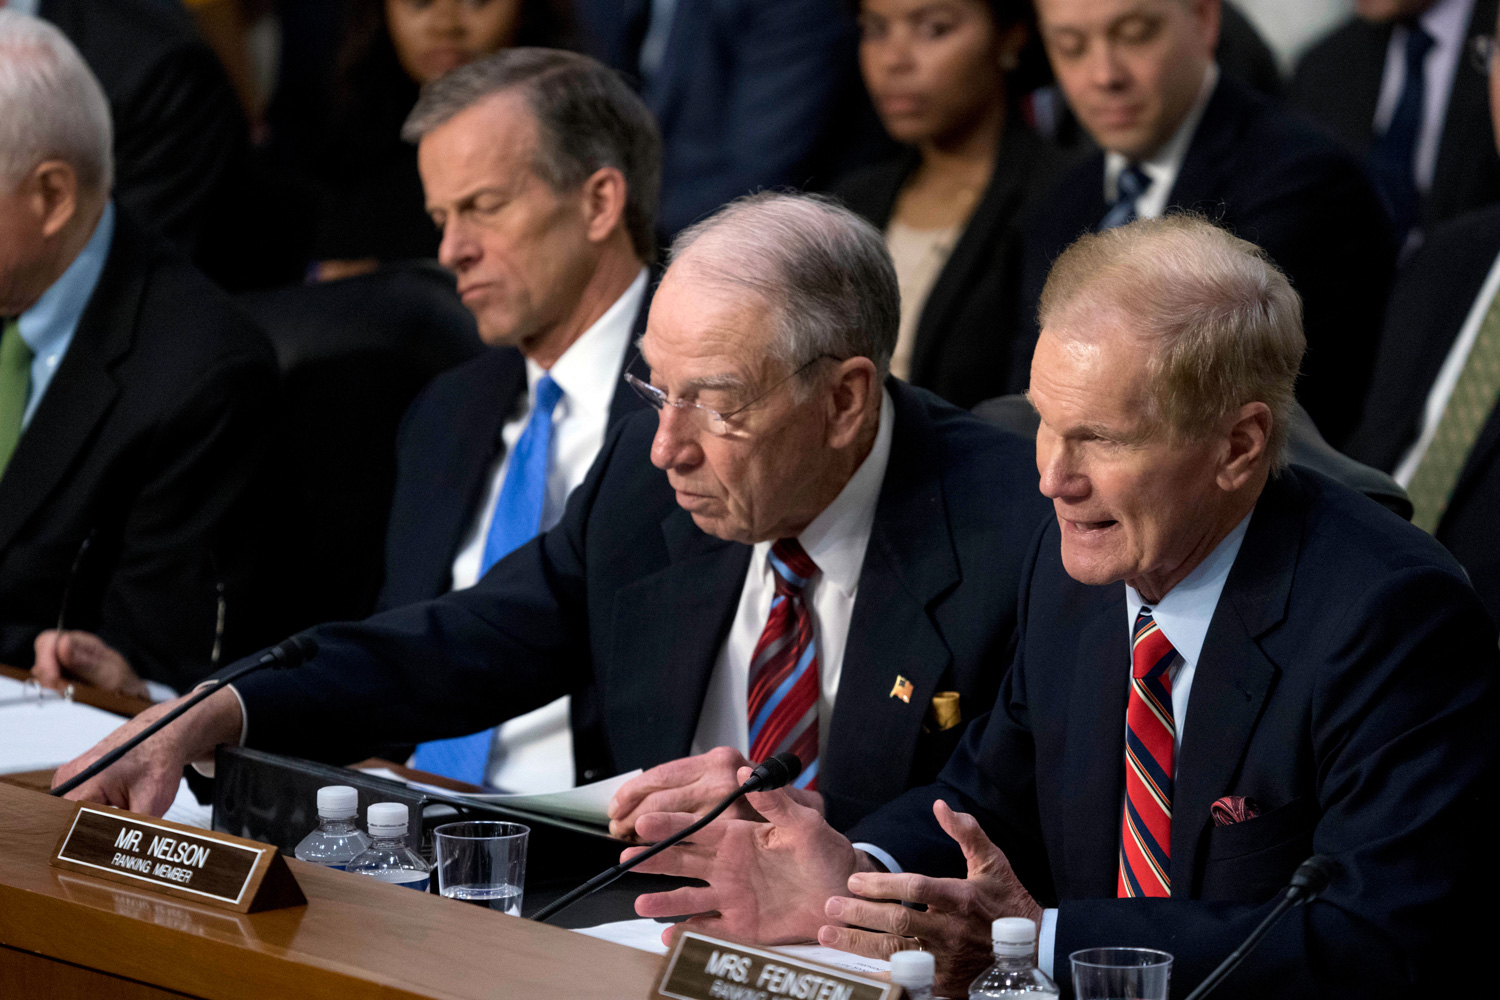 <div class='meta'><div class='origin-logo' data-origin='none'></div><span class='caption-text' data-credit='Andrew Harnik/AP Photo'>Sen. Bill Nelson, D-Fla., right, accompanied by Sen. John Thune, R-S.D., left, and Sen. Chuck Grassley, R-Iowa, second from left, speaks as Facebook CEO Mark Zuckerberg testifies.</span></div>